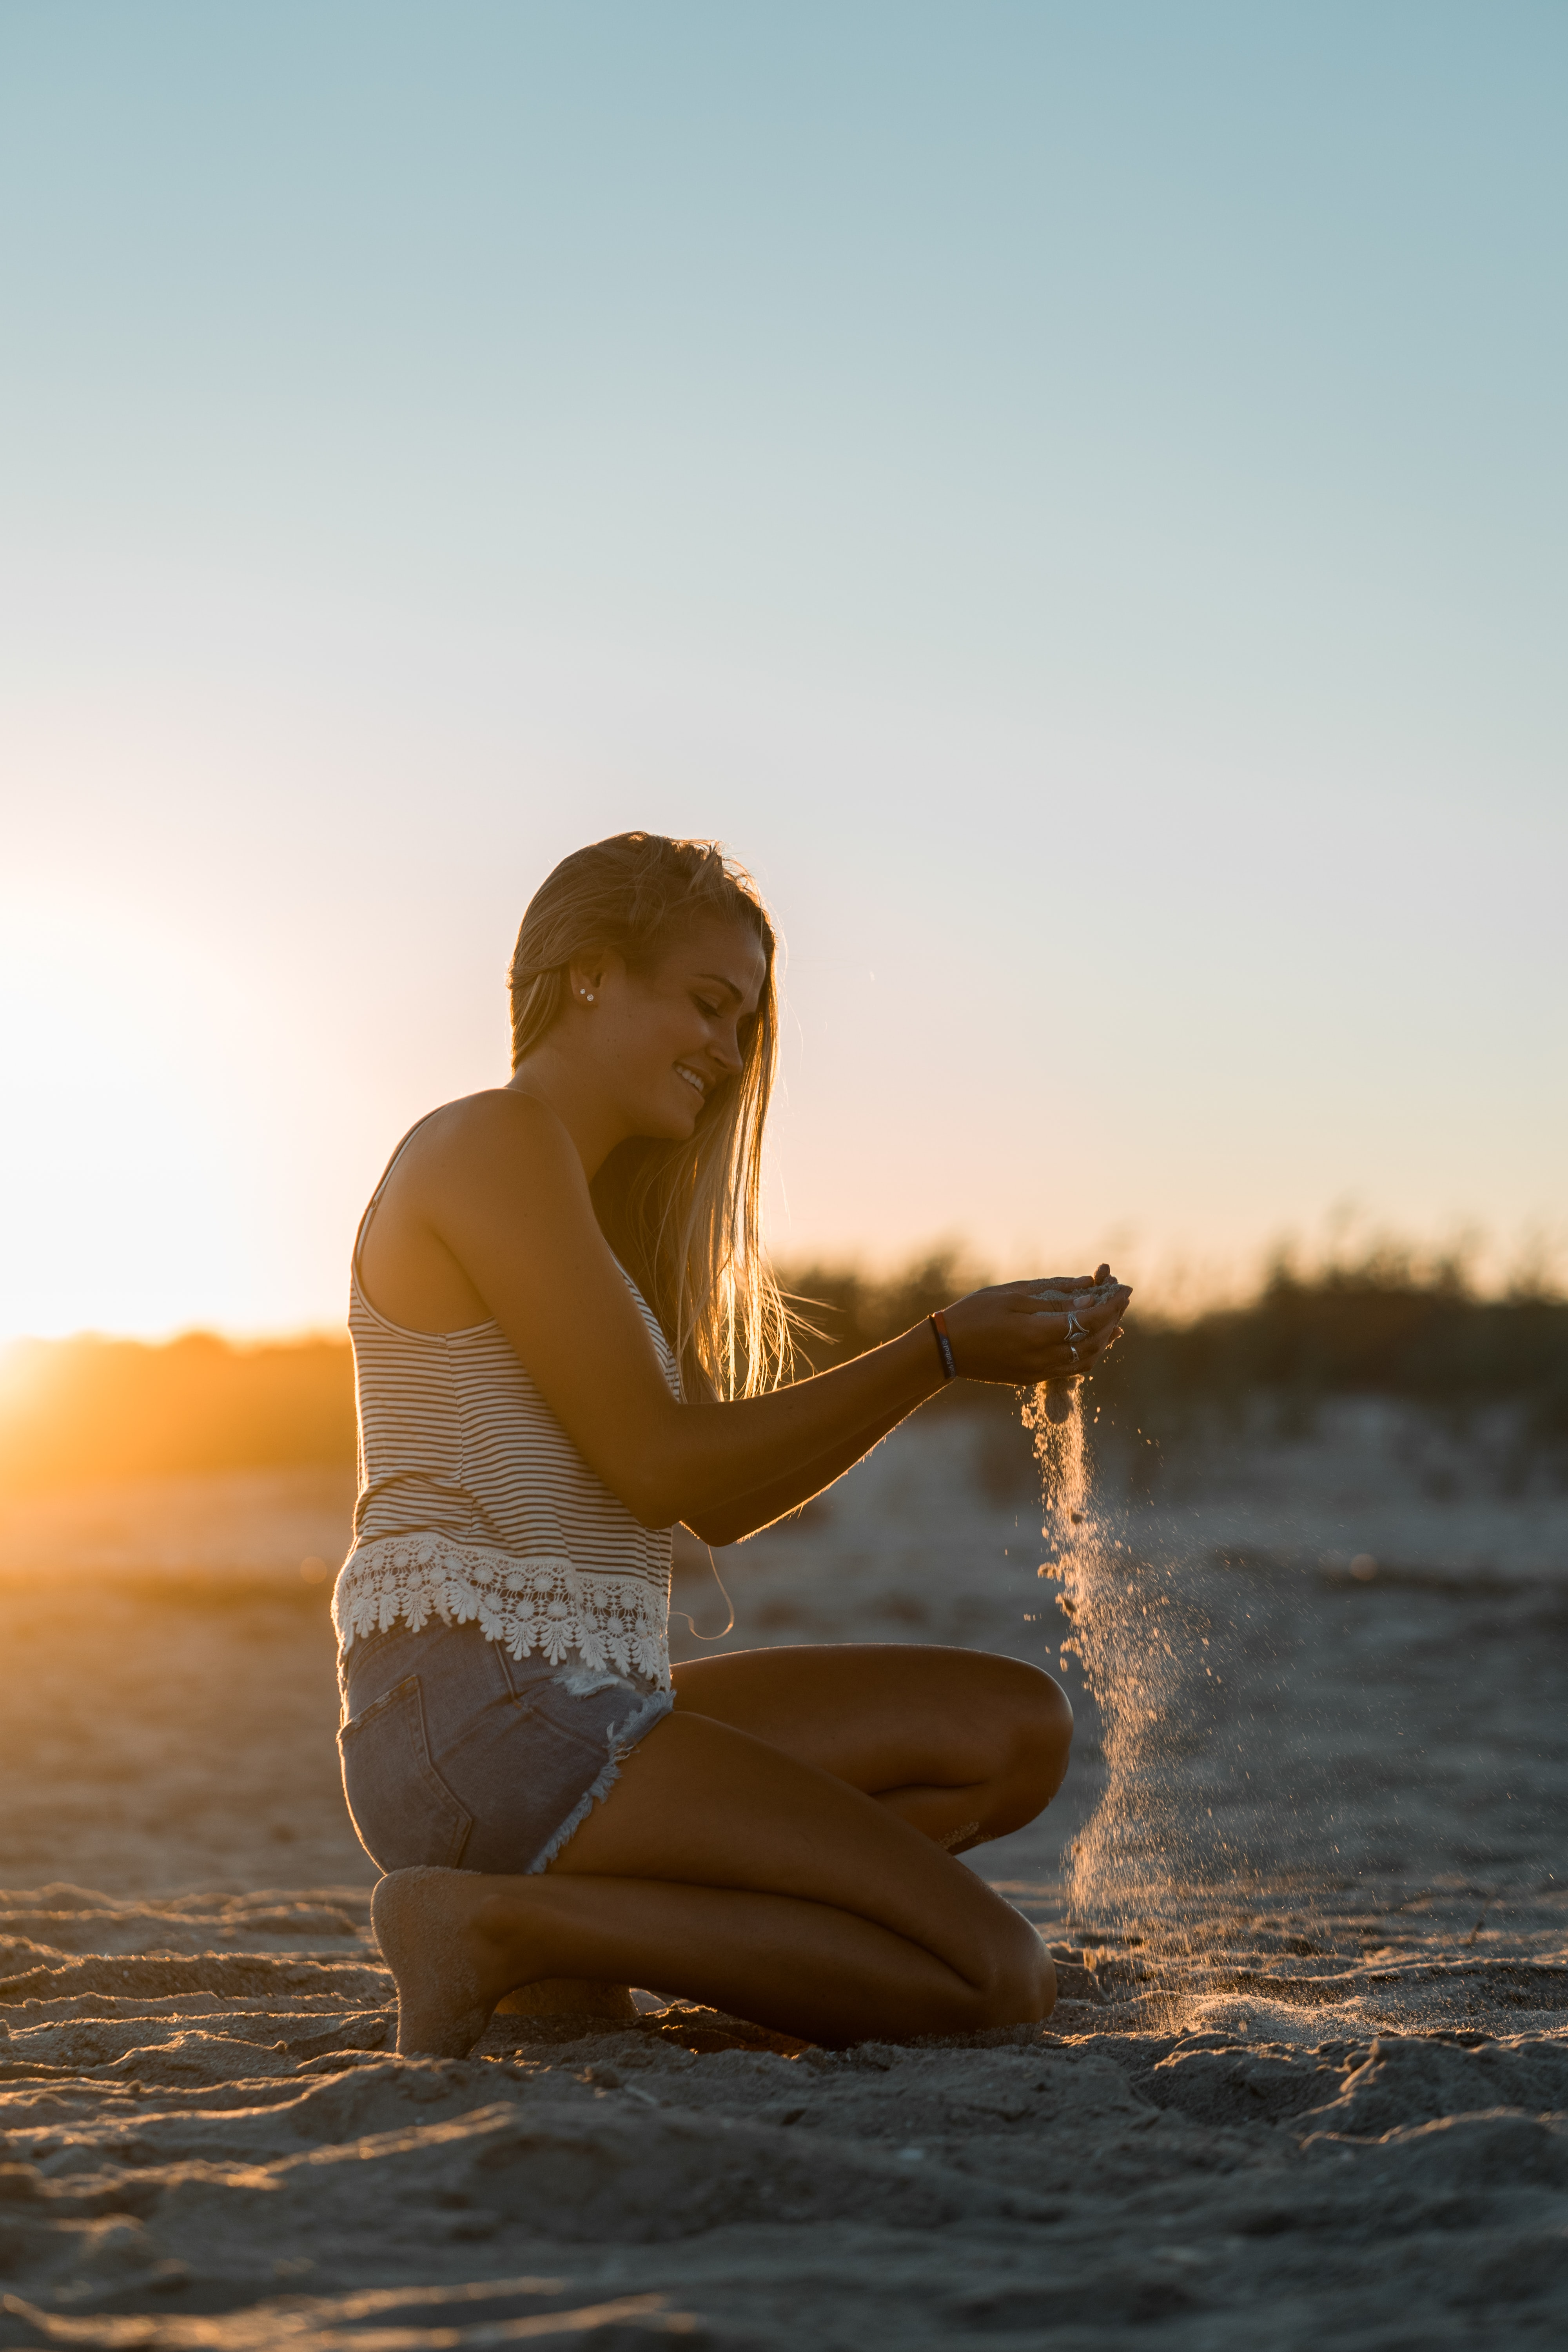 woman playing with sand during sunset